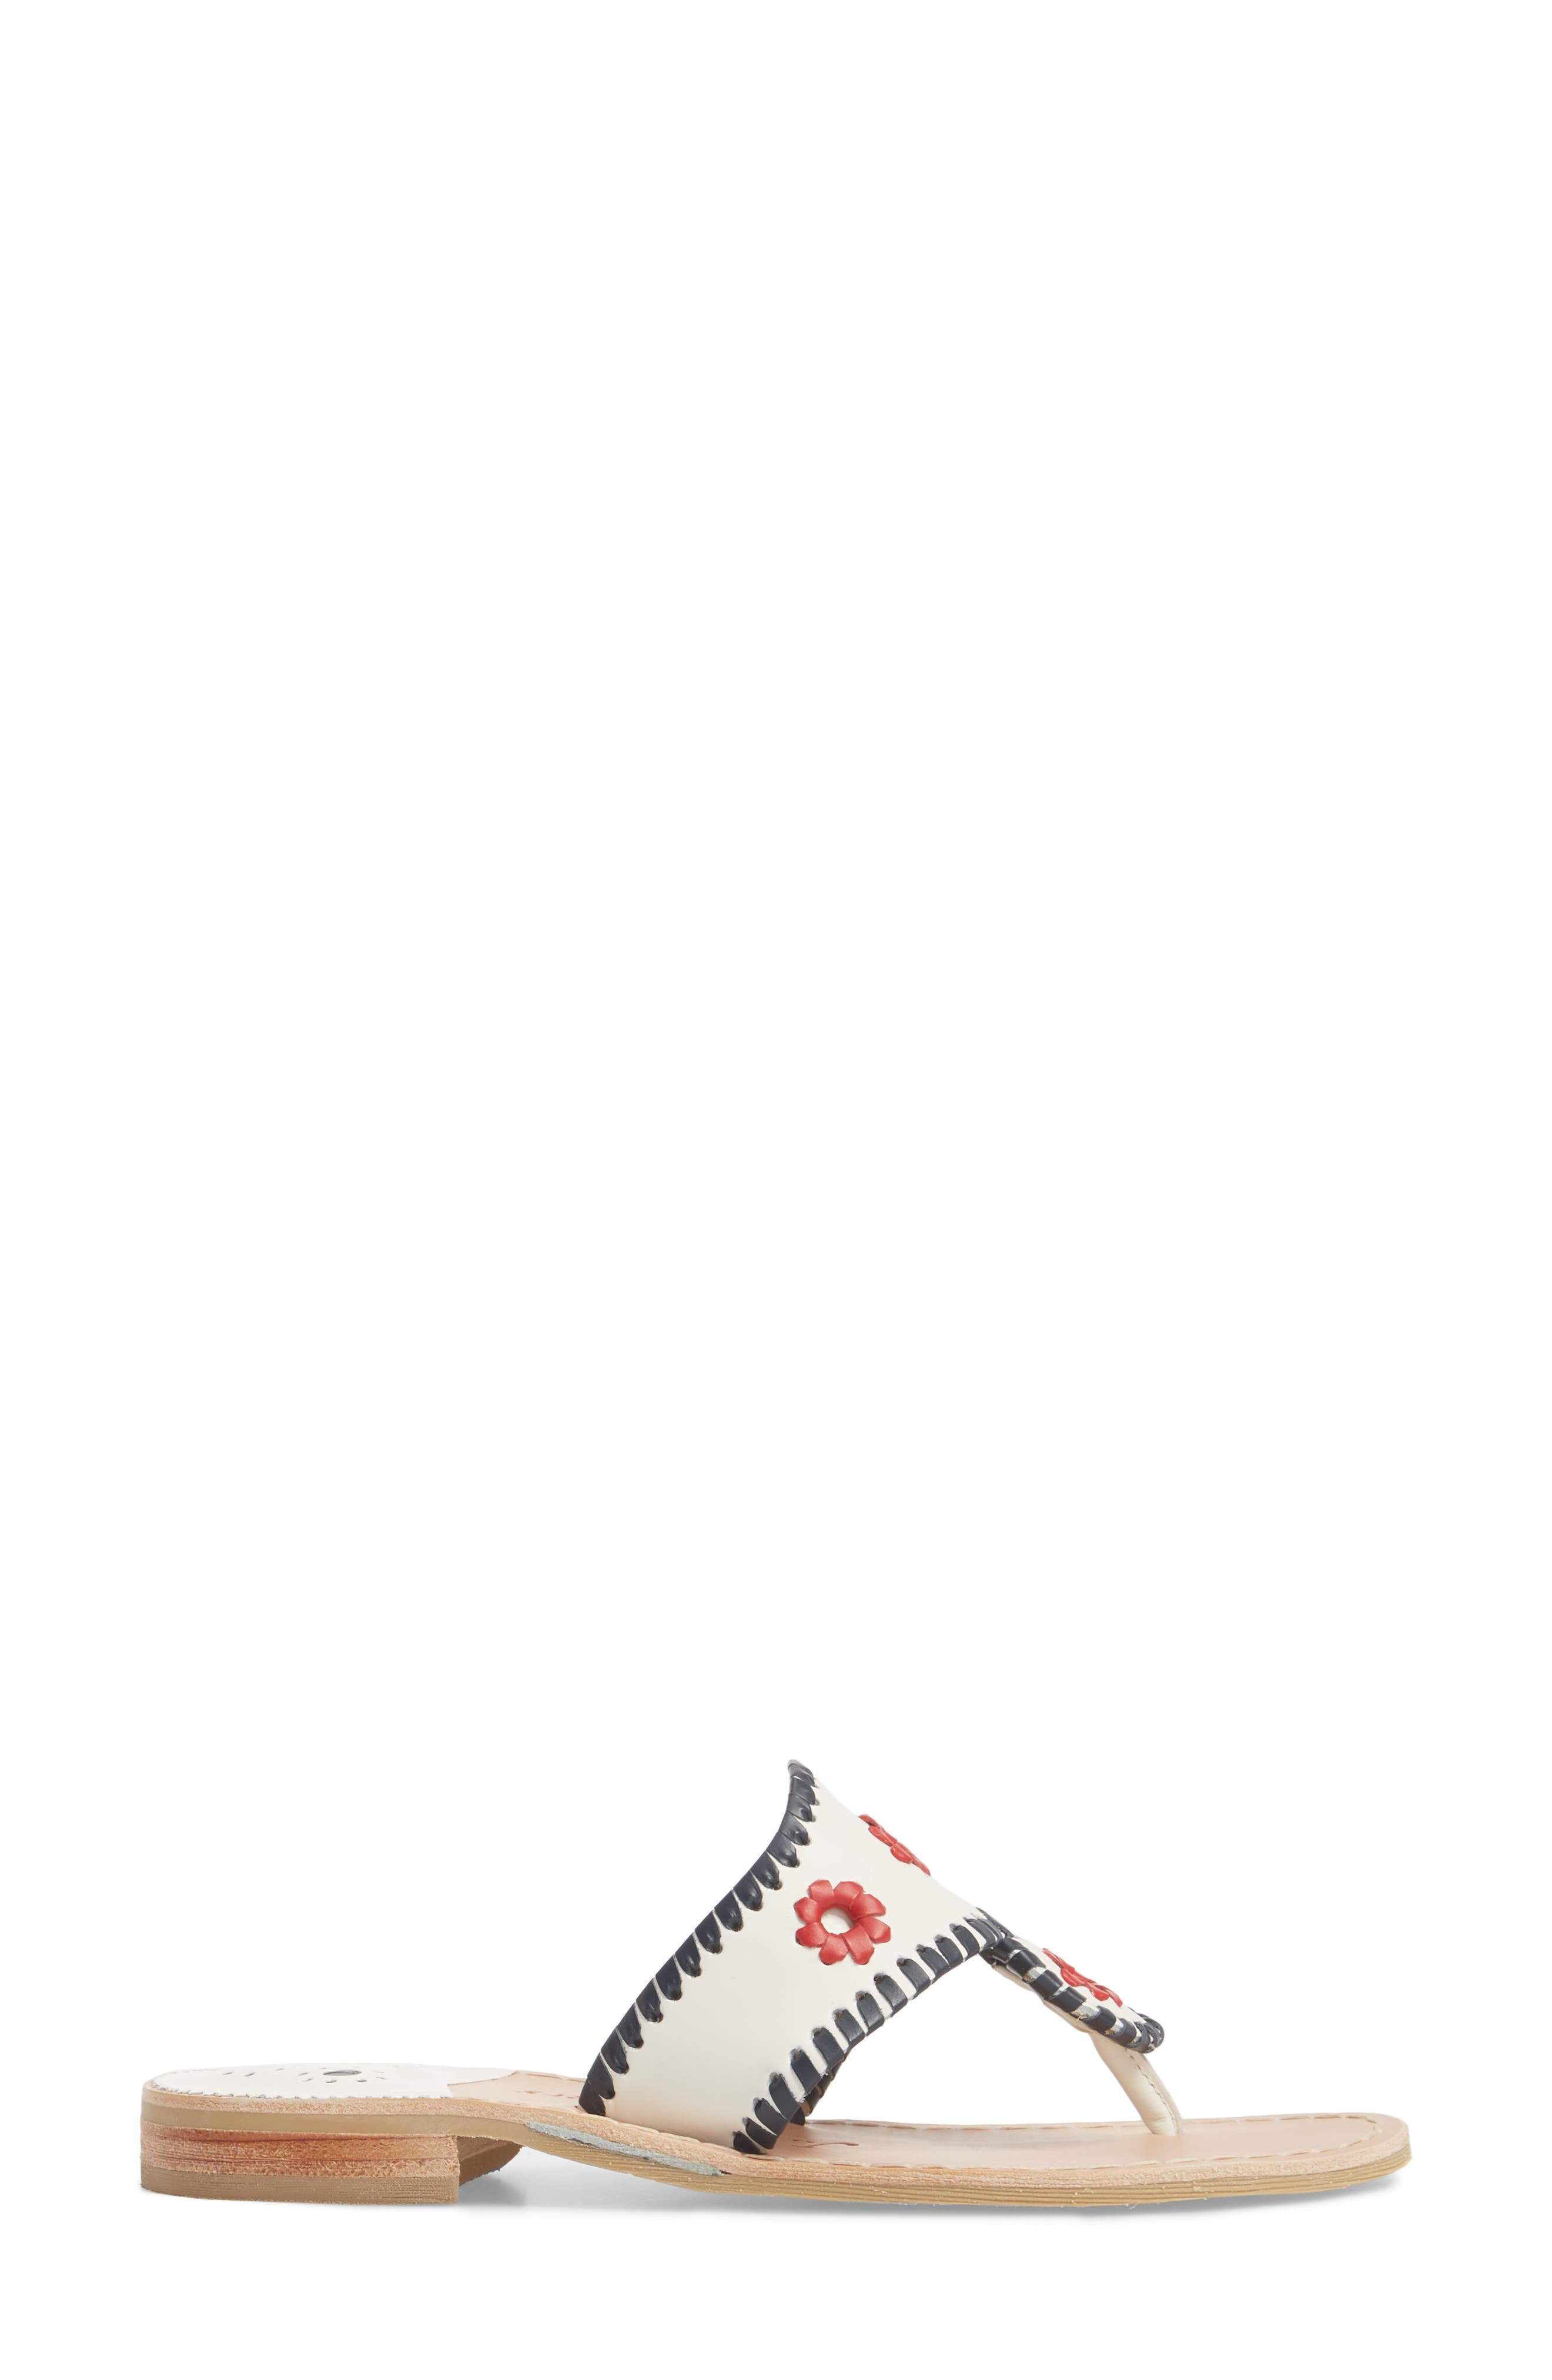 Patriotic Jack Sandal,                             Alternate thumbnail 3, color,                             WHITE/ NAVY/ RED LEATHER